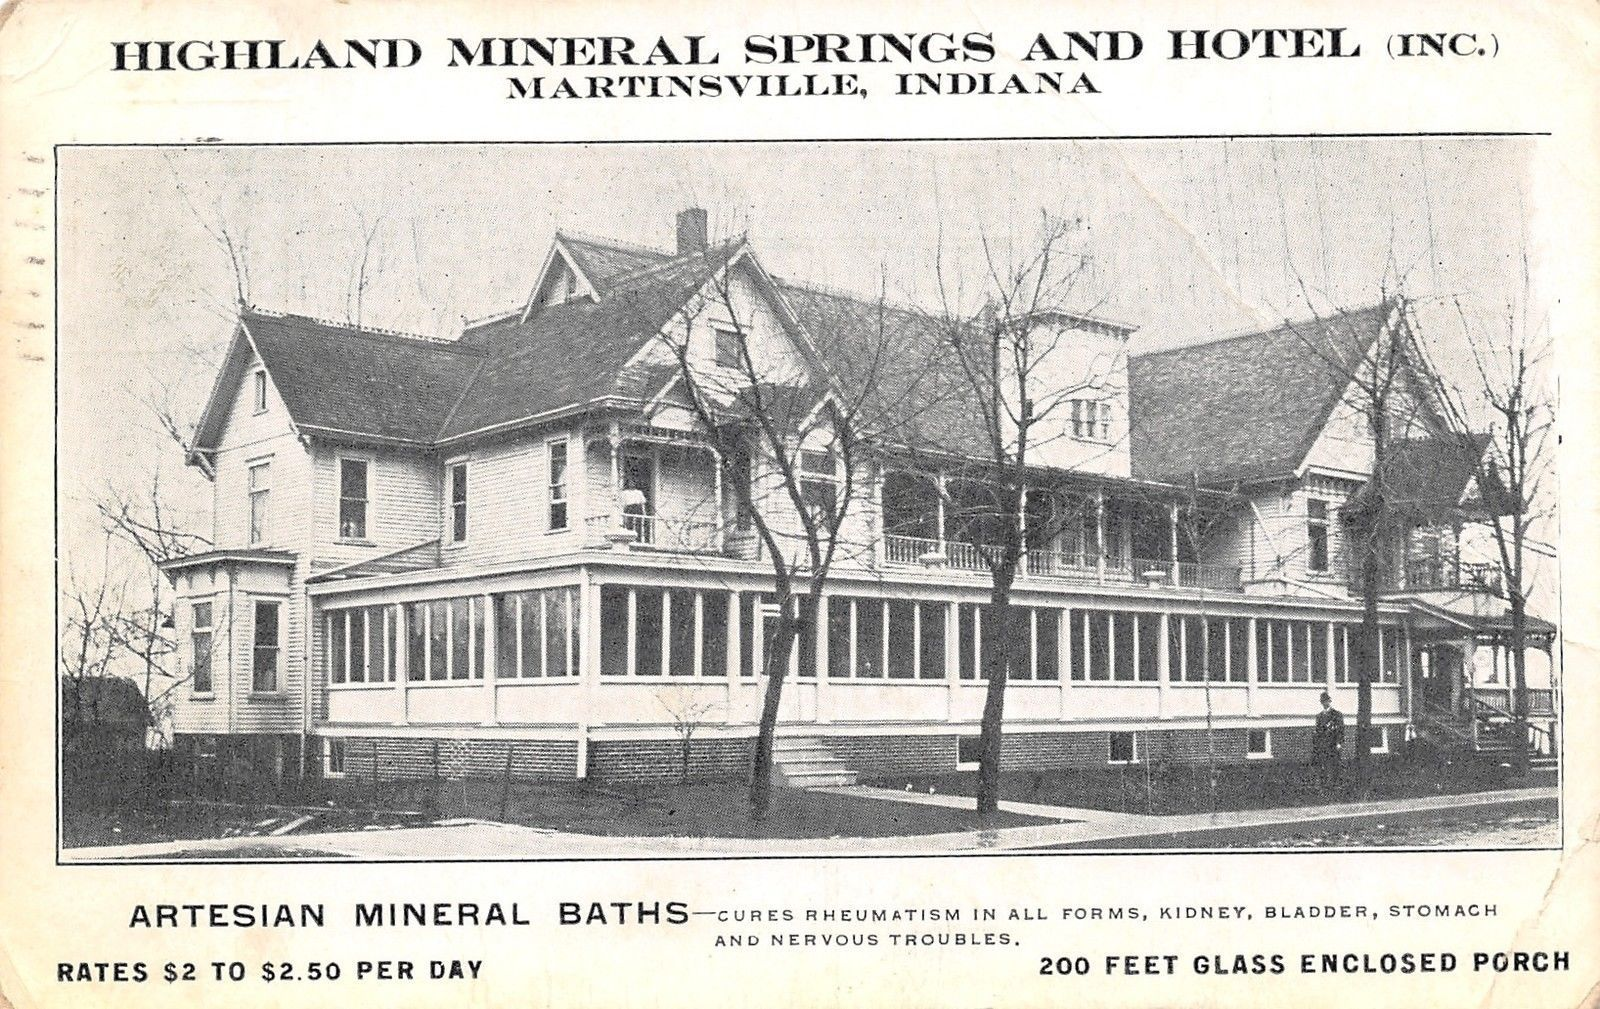 Highland Mineral Springs And Hotel In Martinsville Indiana